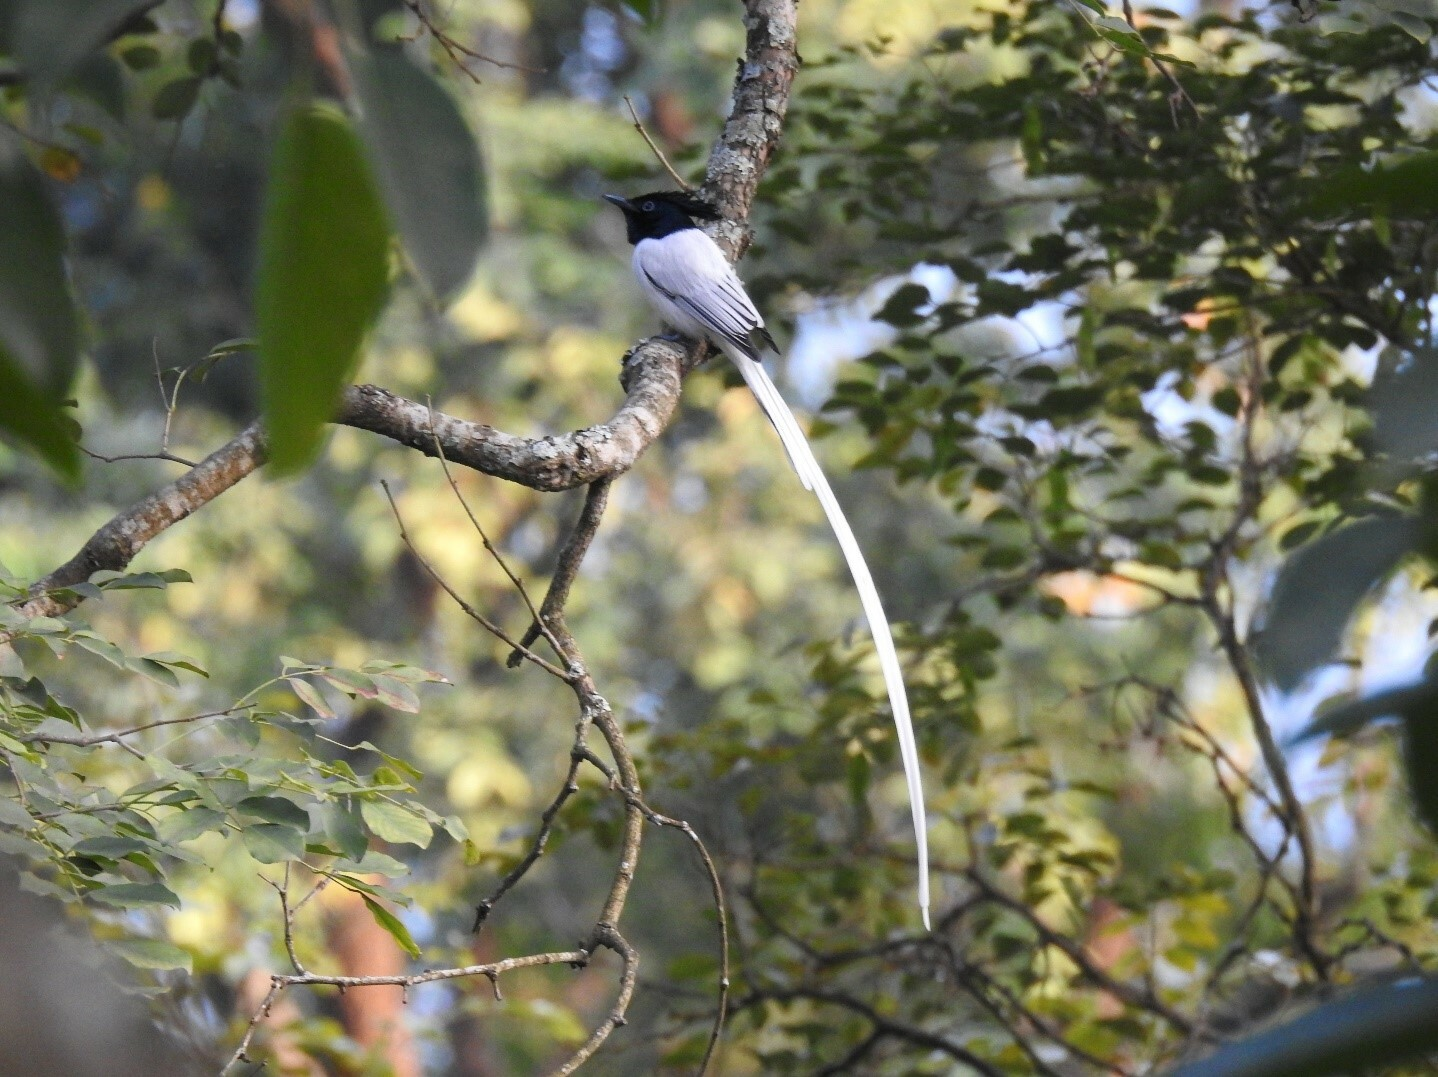 Many birds, like this Indian Paradise Flycatcher (Terpsiphone paradisi) which eats insects, would not thrive in an urban environment.